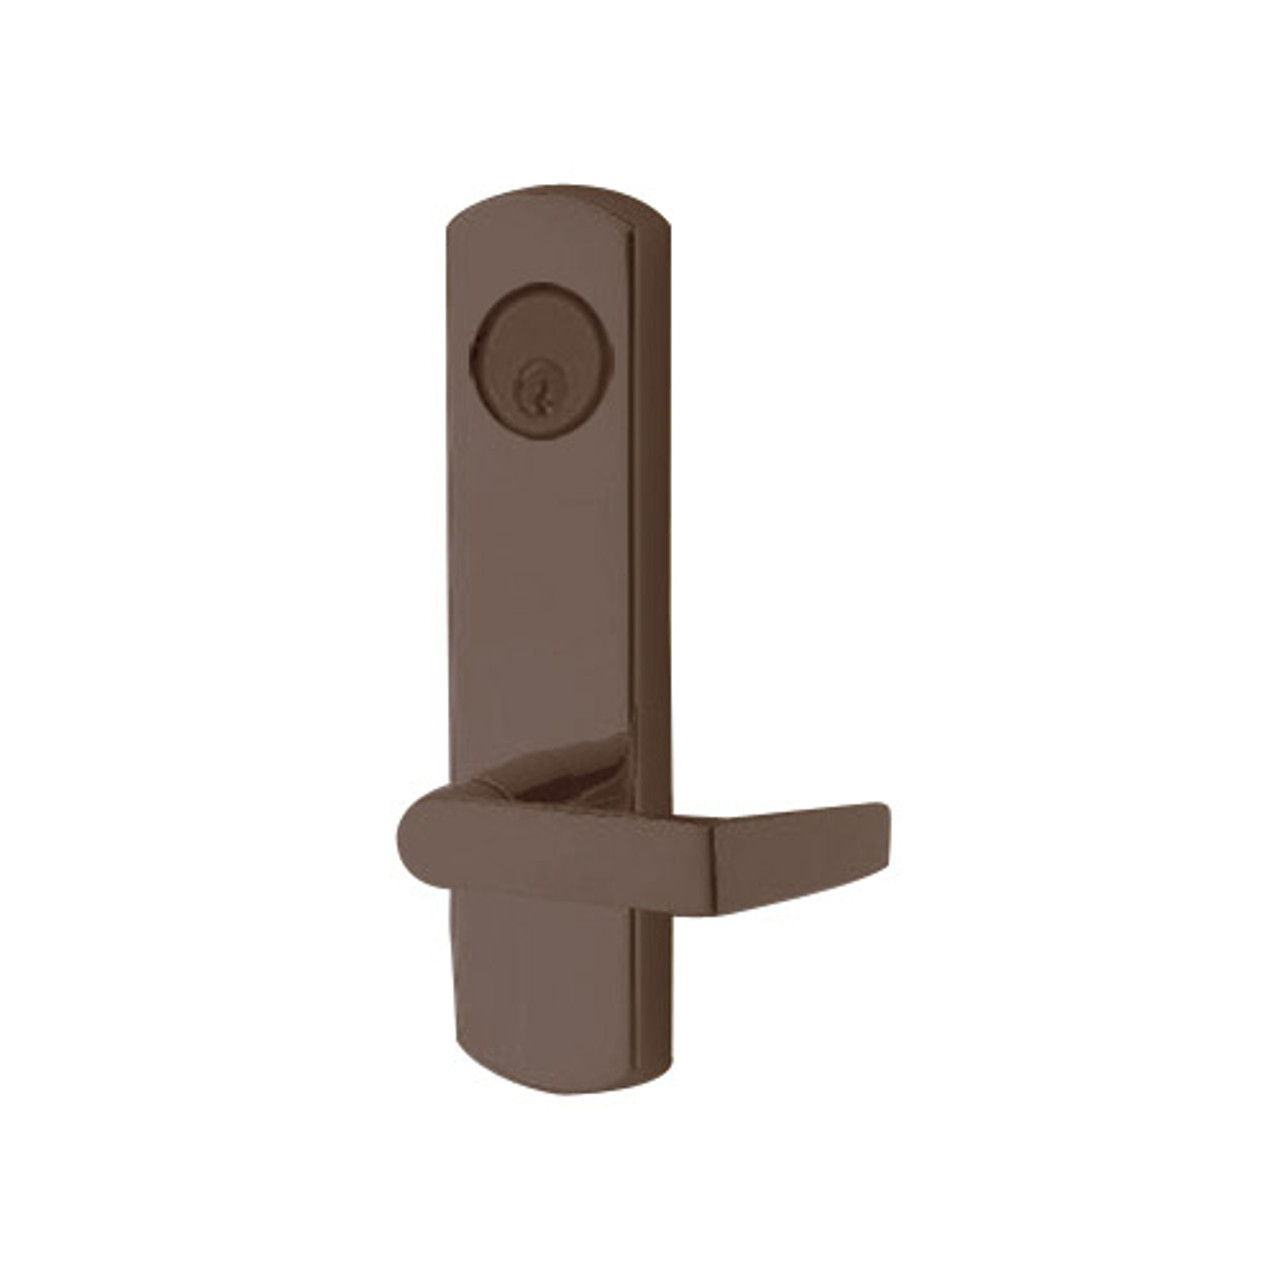 3080E-03-0-97-55 US10B Adams Rite Electrified Entry Trim with Square Lever in Oil Rubbed Bronze Finish